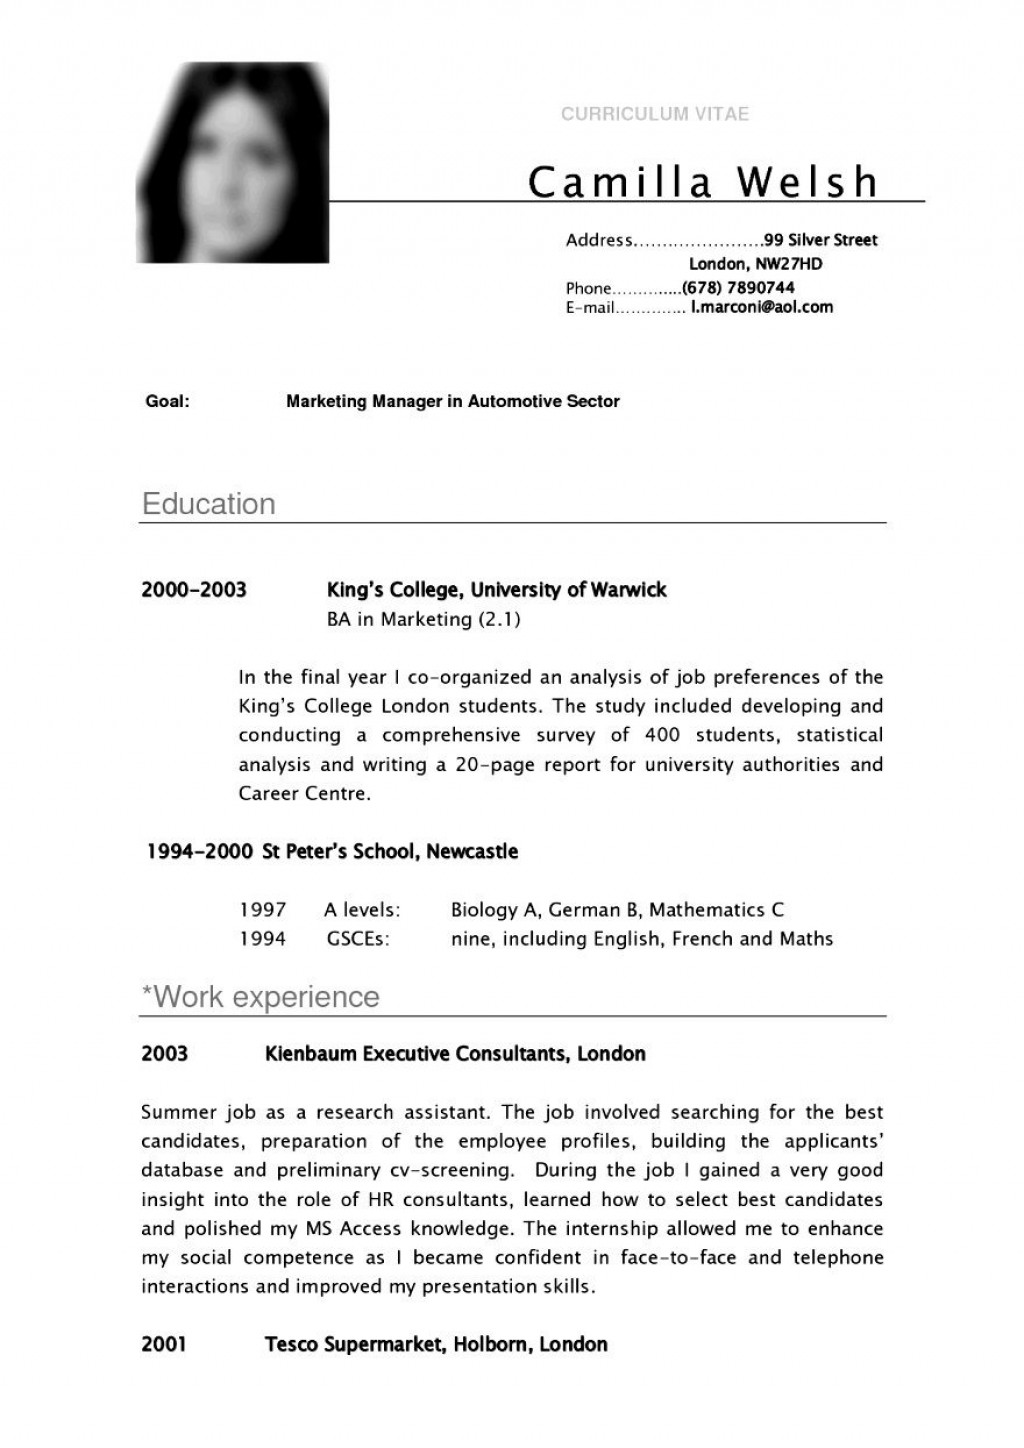 000 Fantastic Curriculum Vitae Template Student Inspiration  Sample College Undergraduate Example For Research PaperLarge